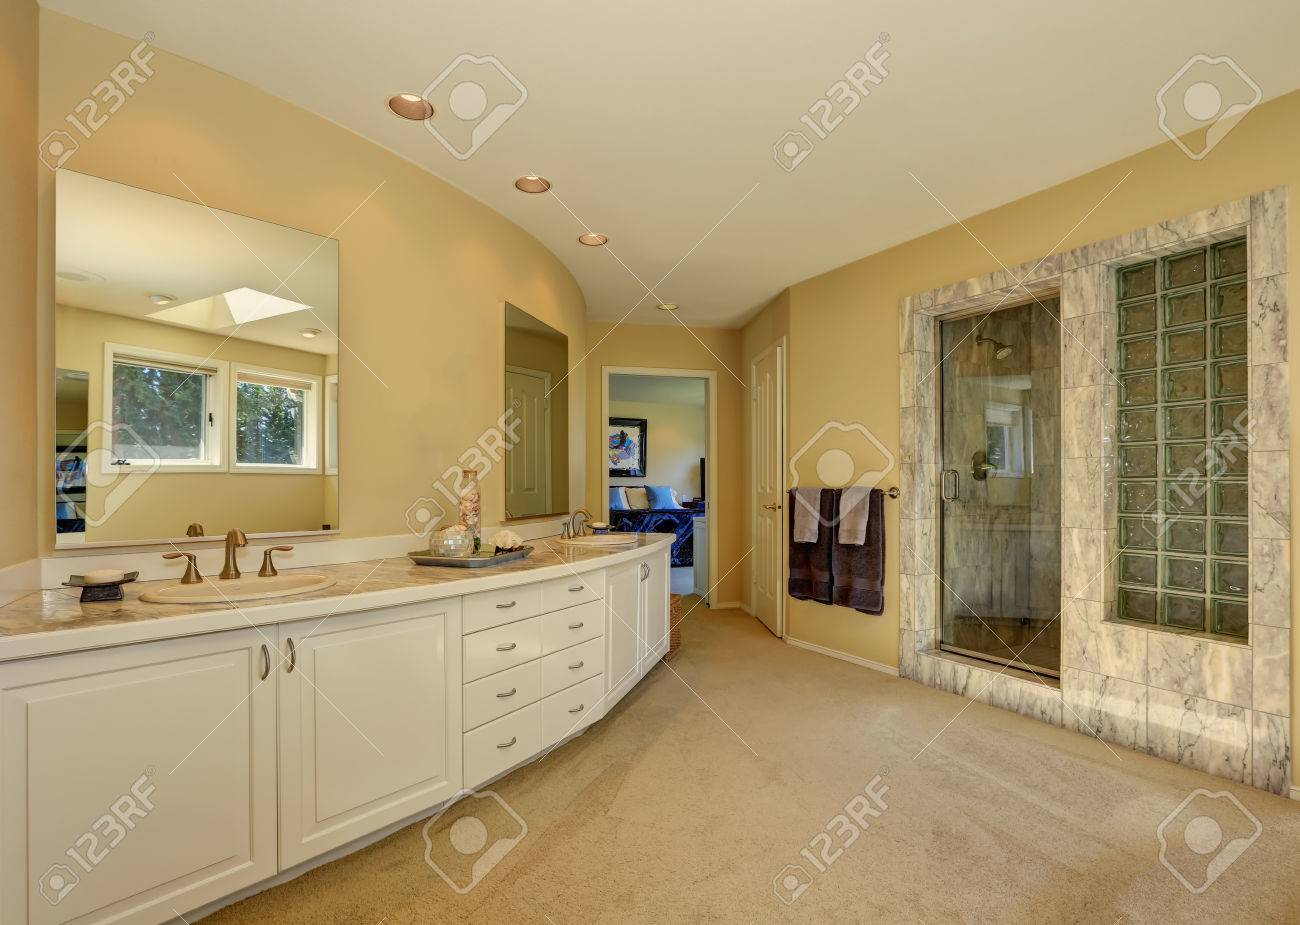 Master Marble Bathroom Interior With Long White Vanity And Beige Stock Photo Picture And Royalty Free Image Image 61648818